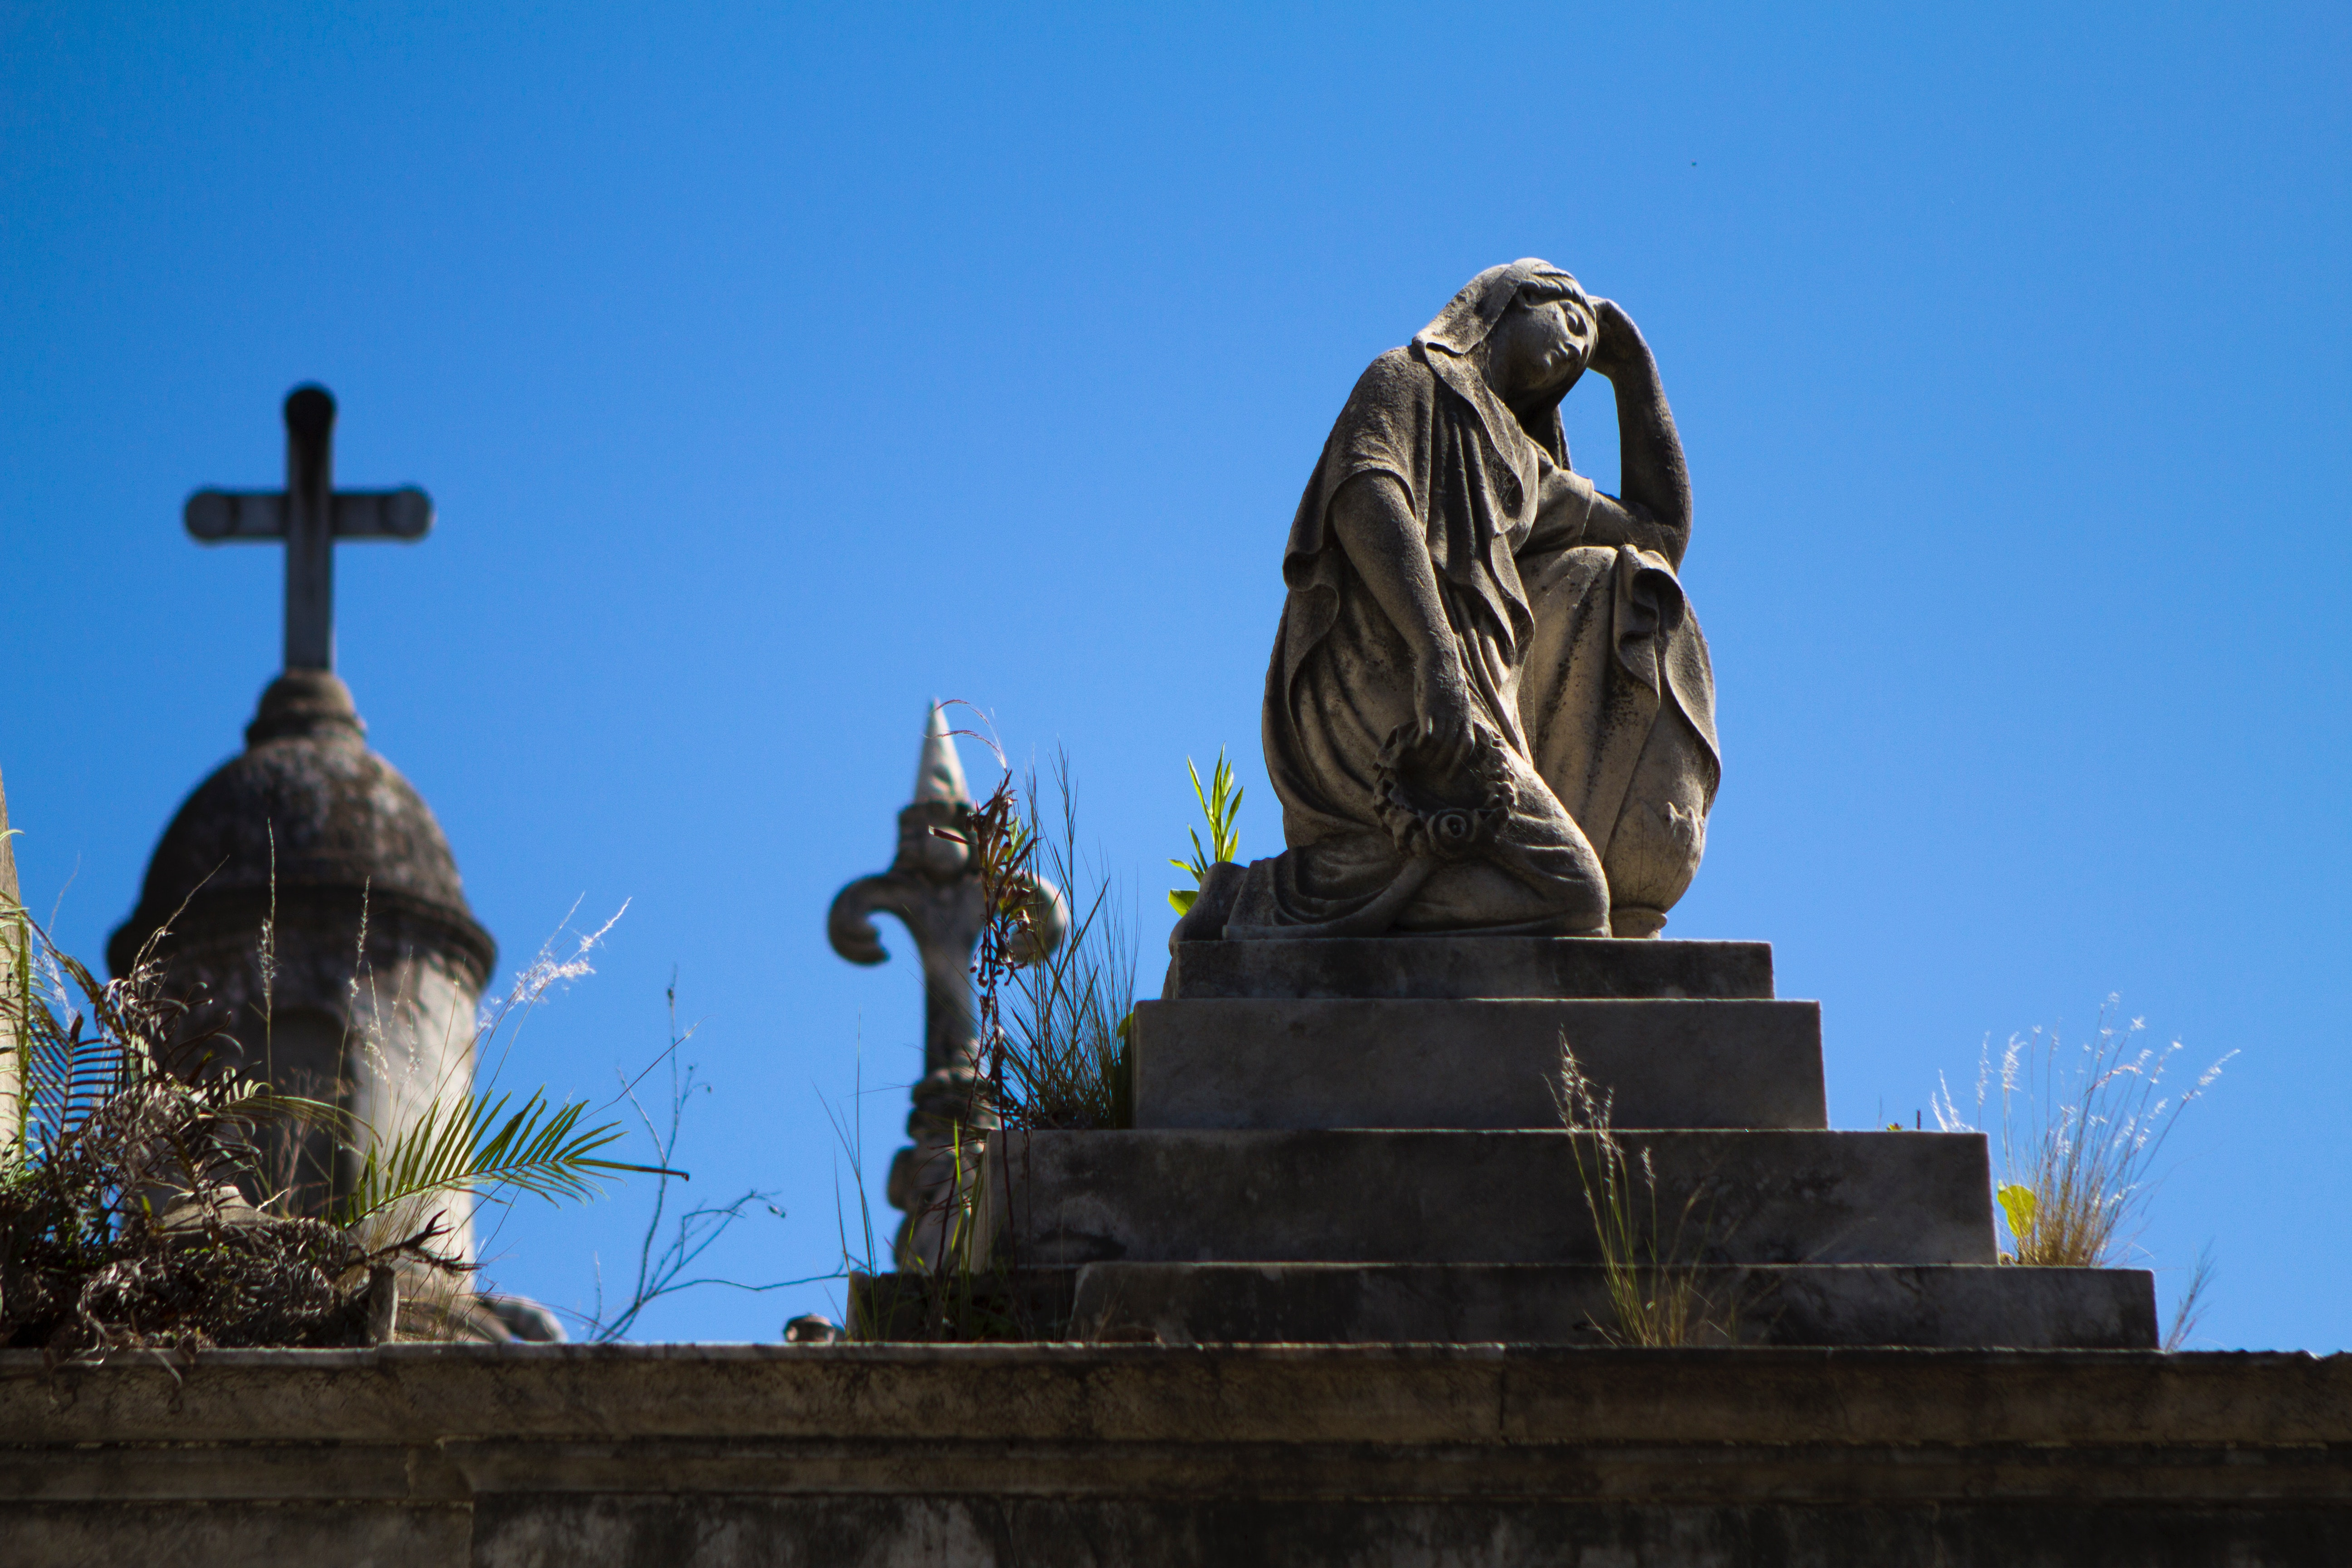 Woman statue near cross during daytime photo